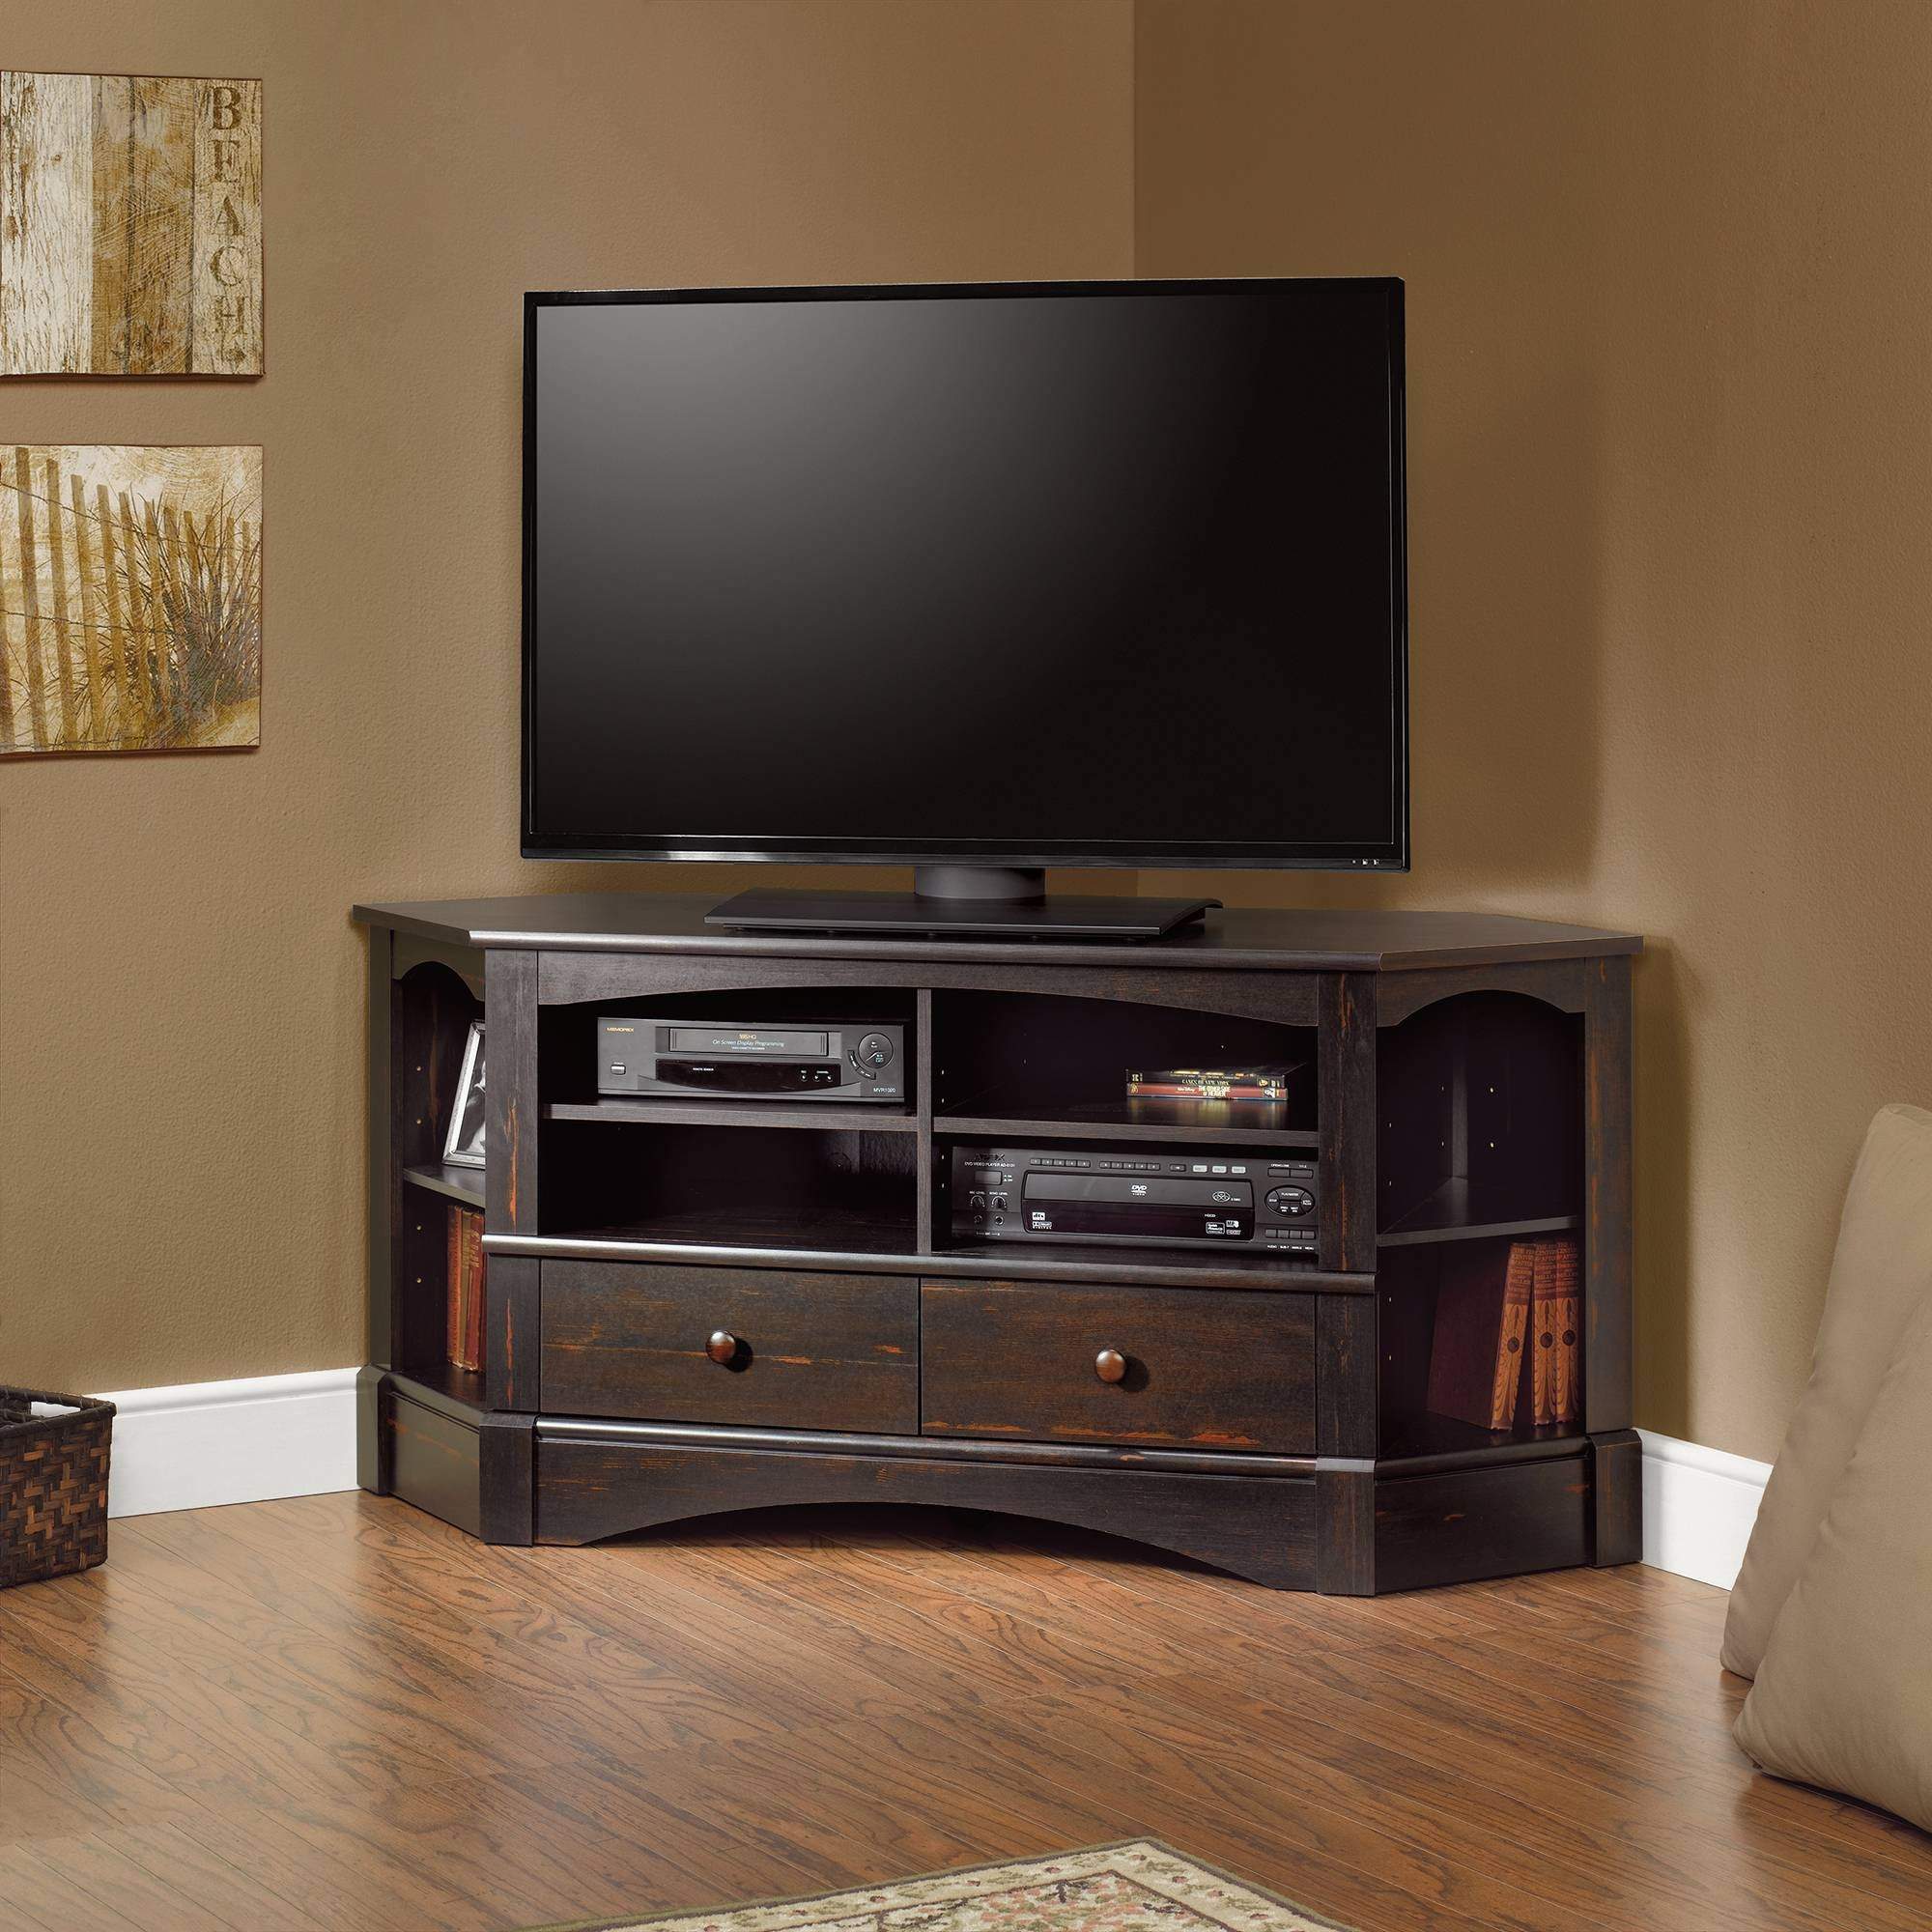 Small Wooden Corner Tv Stand Console Cabinet With Fireplace With Cornet Tv Stands (View 6 of 15)